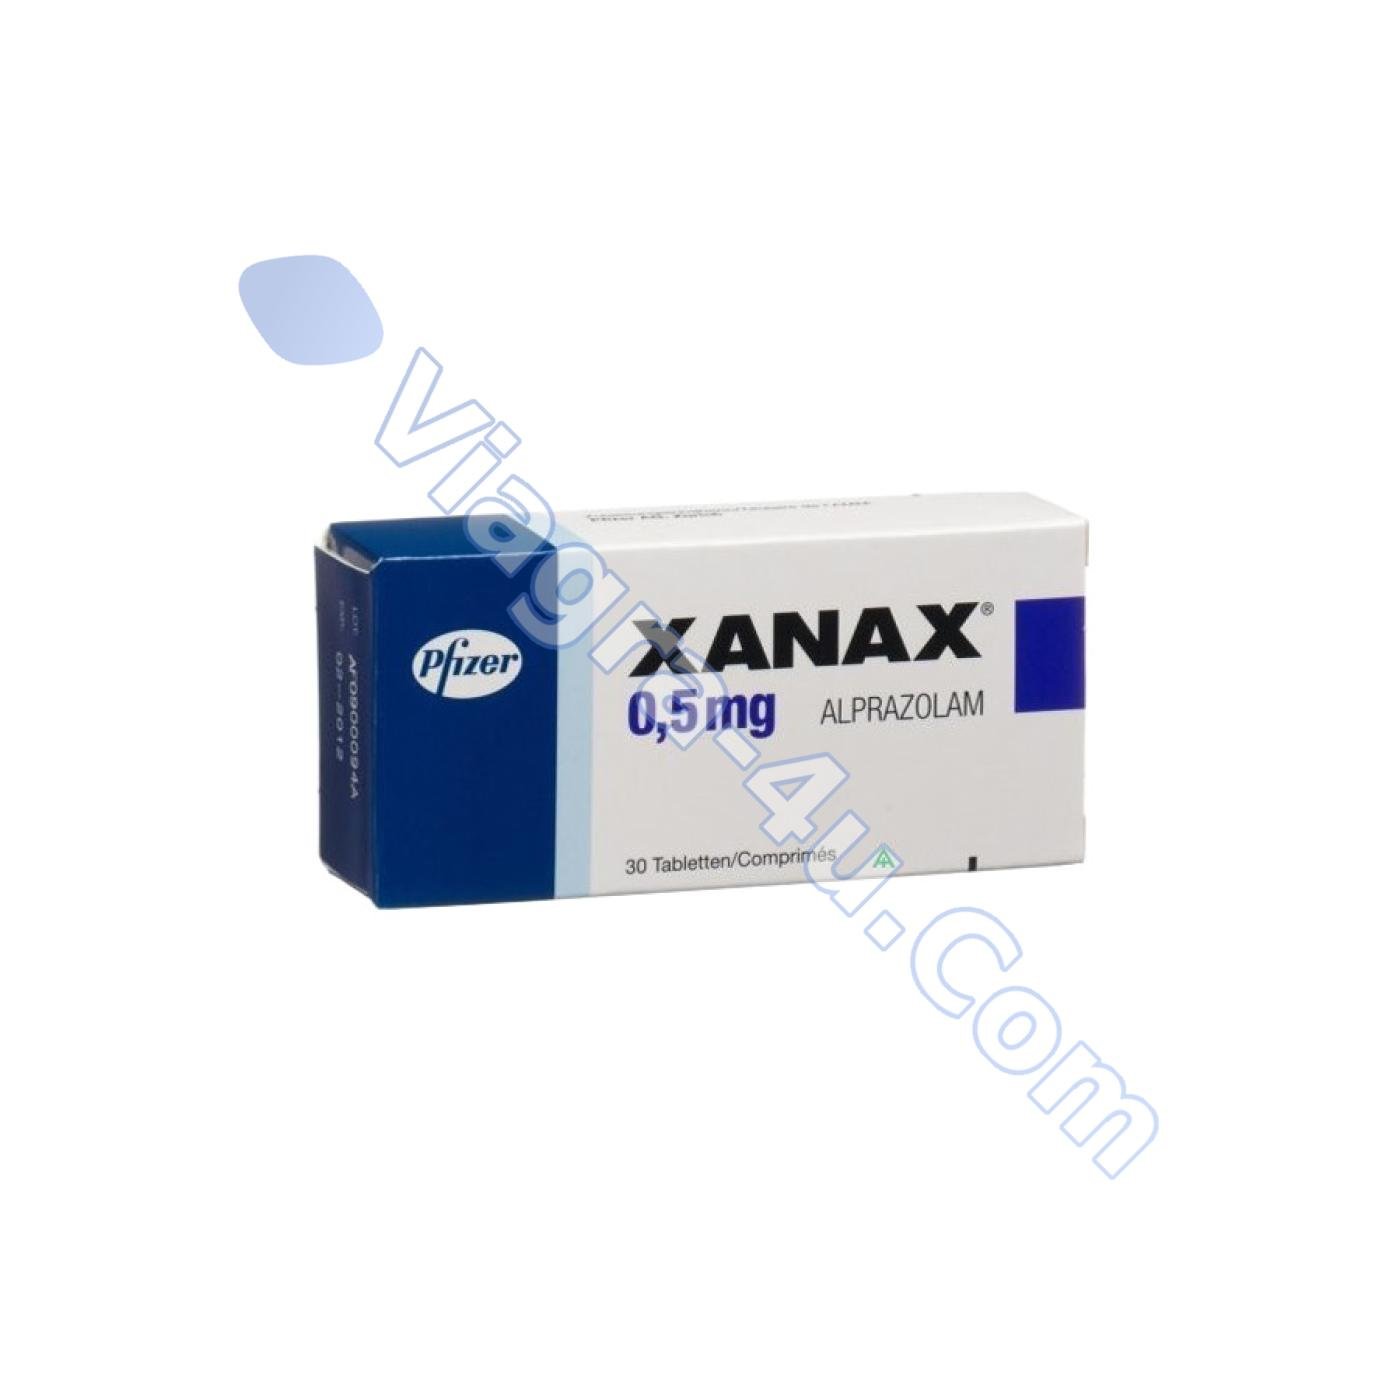 where to purchase xanax online cheap